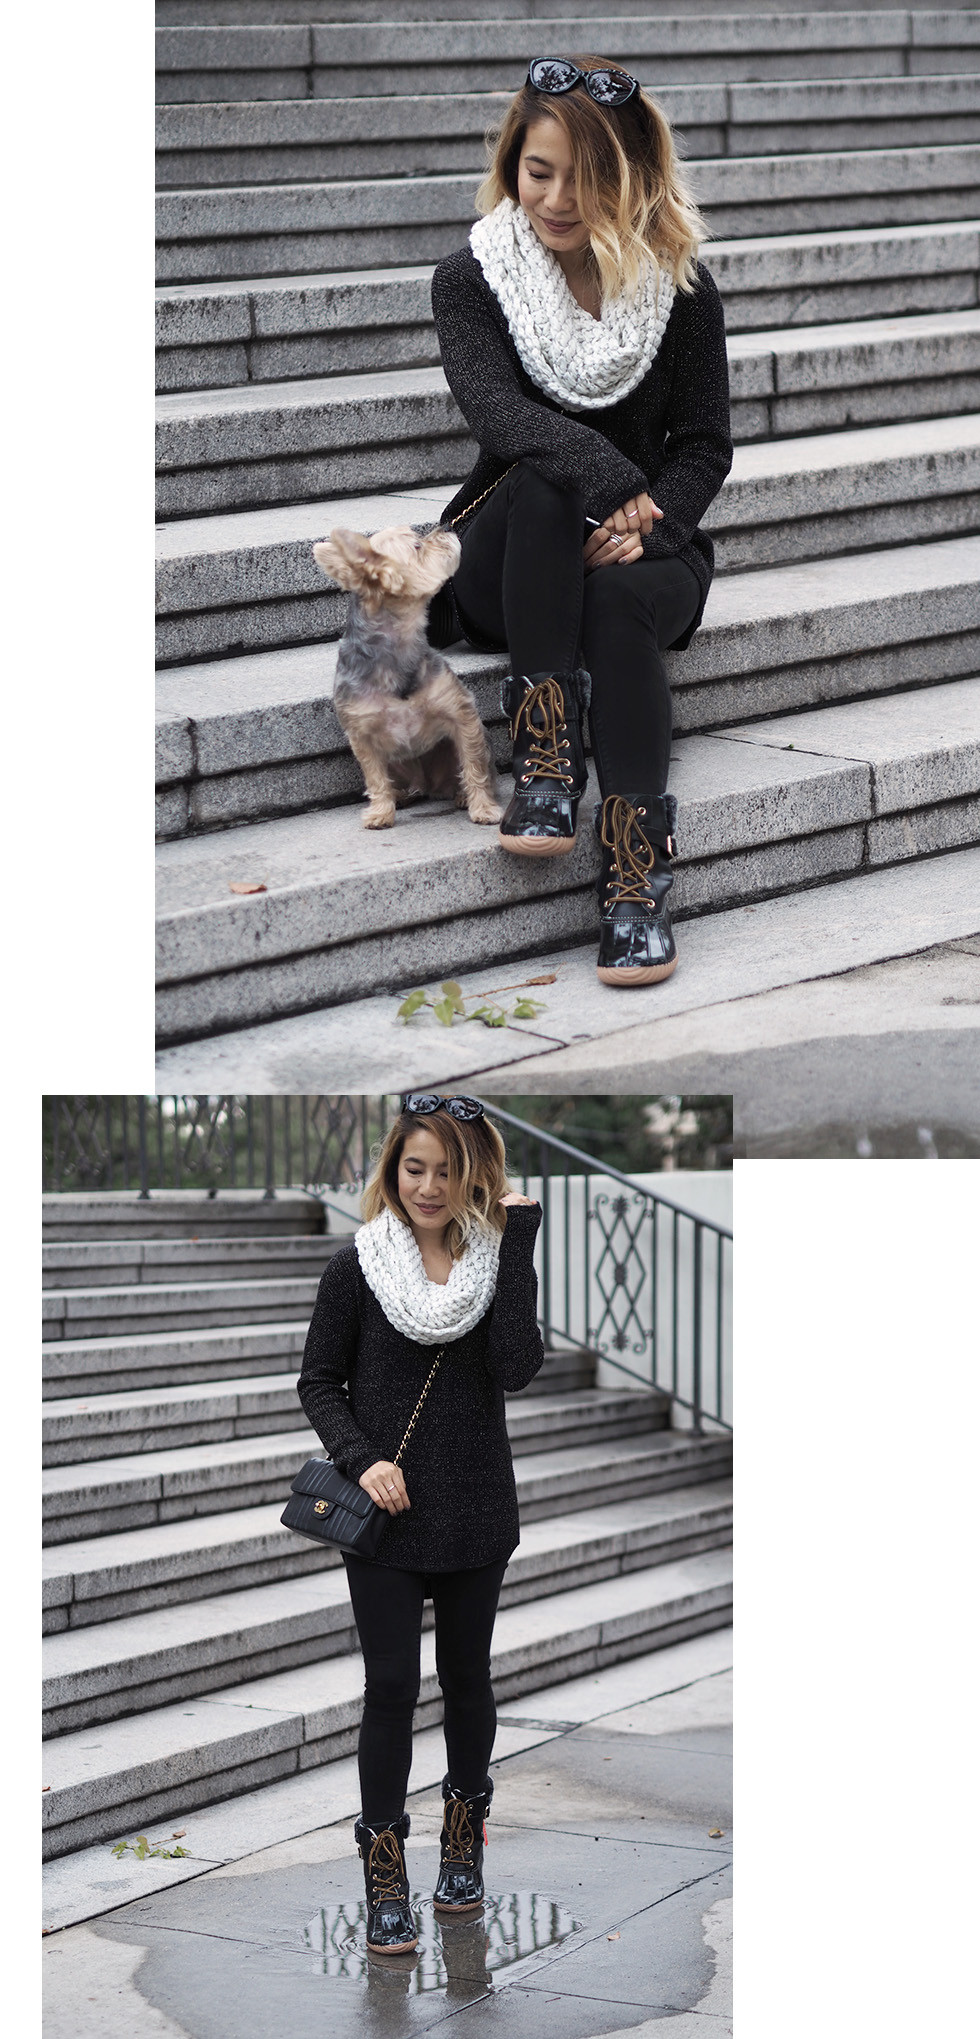 JCPenney Fall Outfit